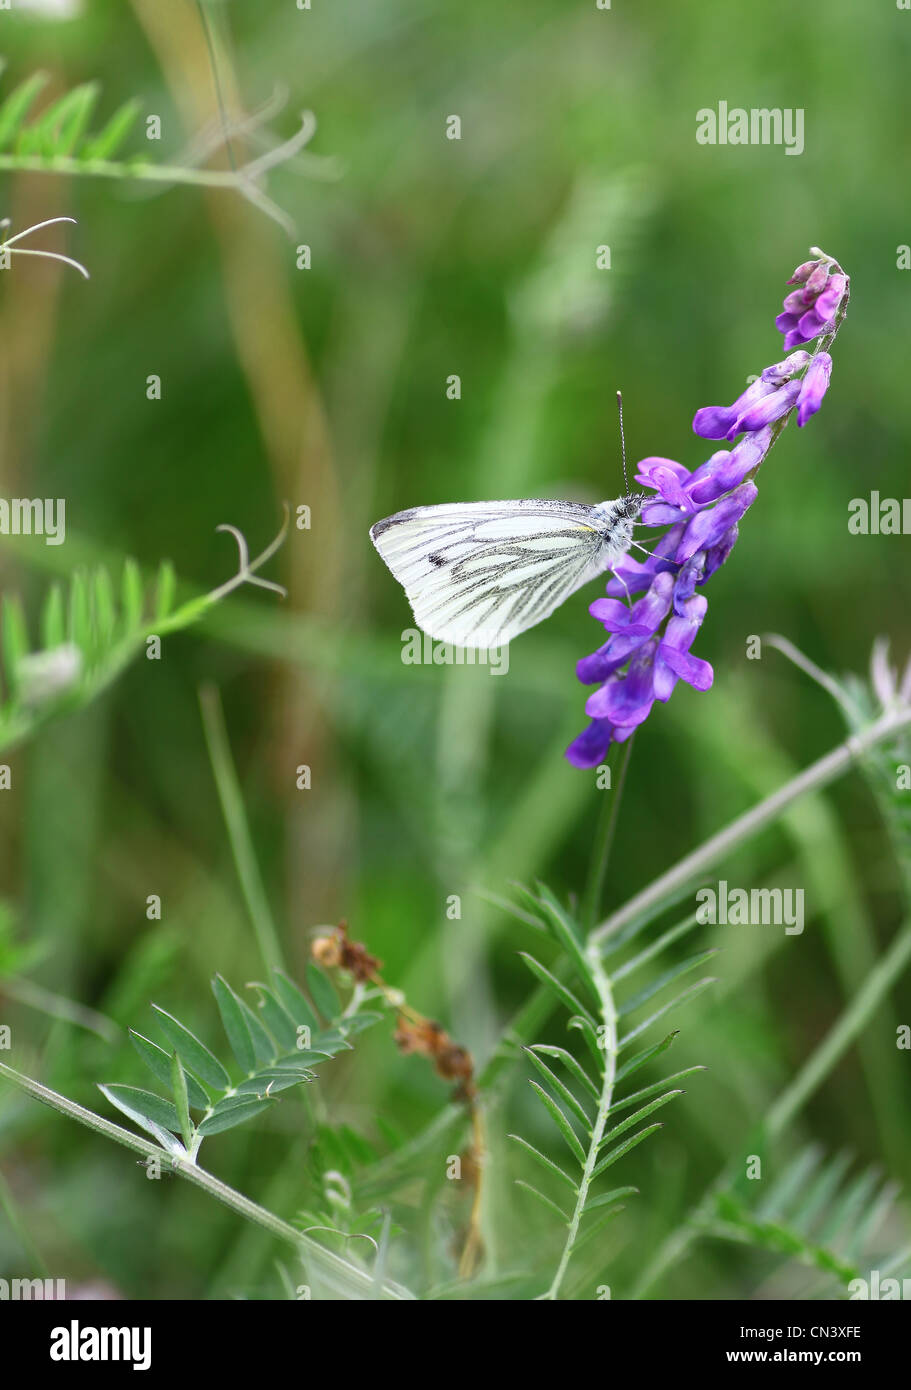 A close up of a Green Veined White (Pieris napi) butterfly on a Purple Vetch (Vicia) flower - Stock Image